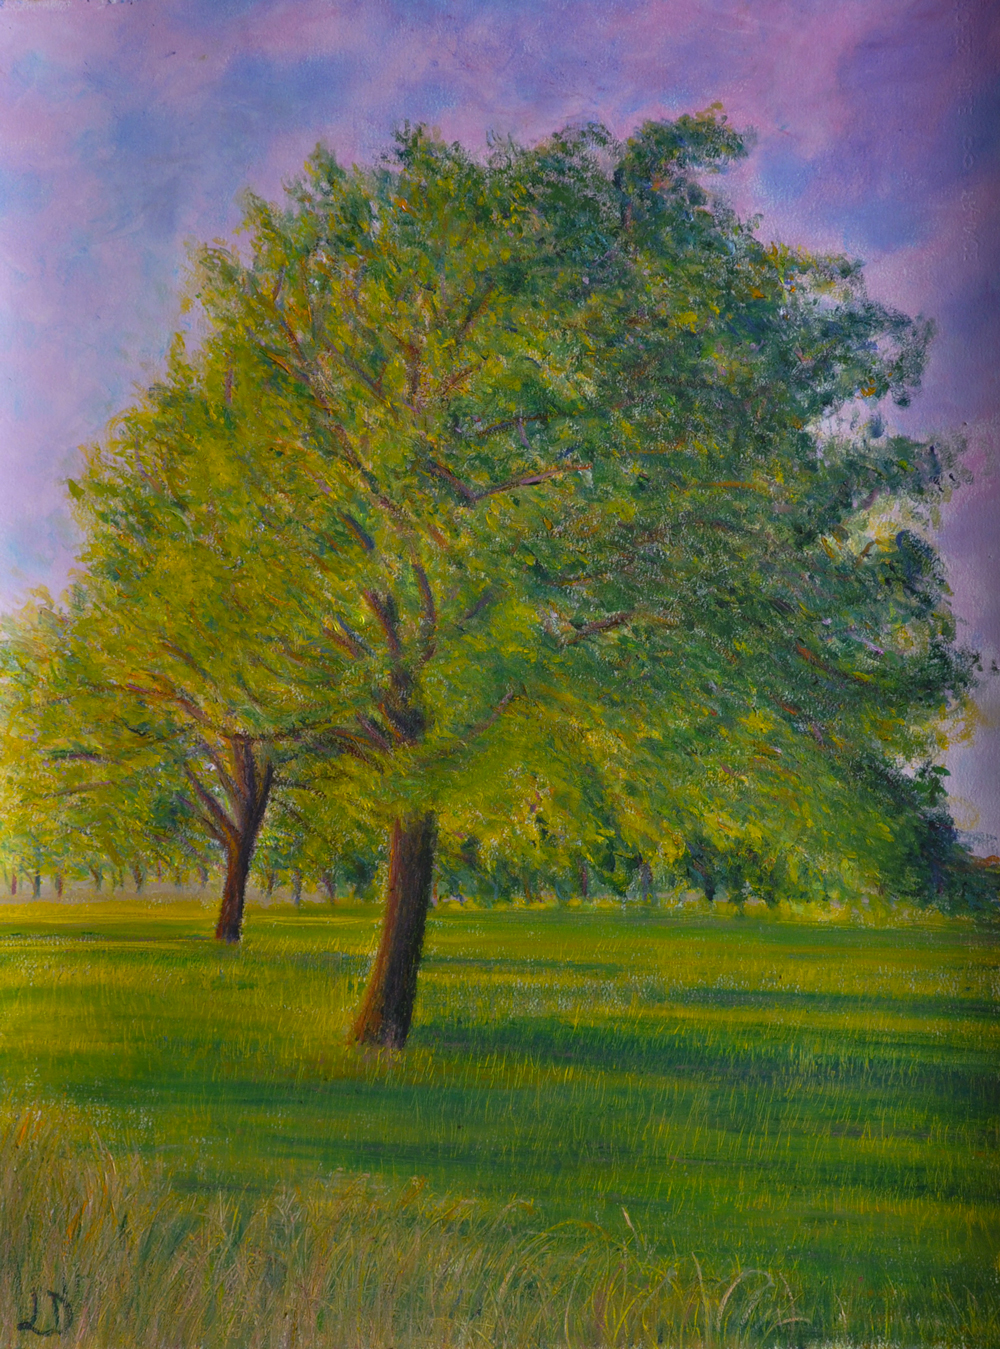 Walnut trees no. 8, Penthalaz. Oil on paper, 76x56, 2017